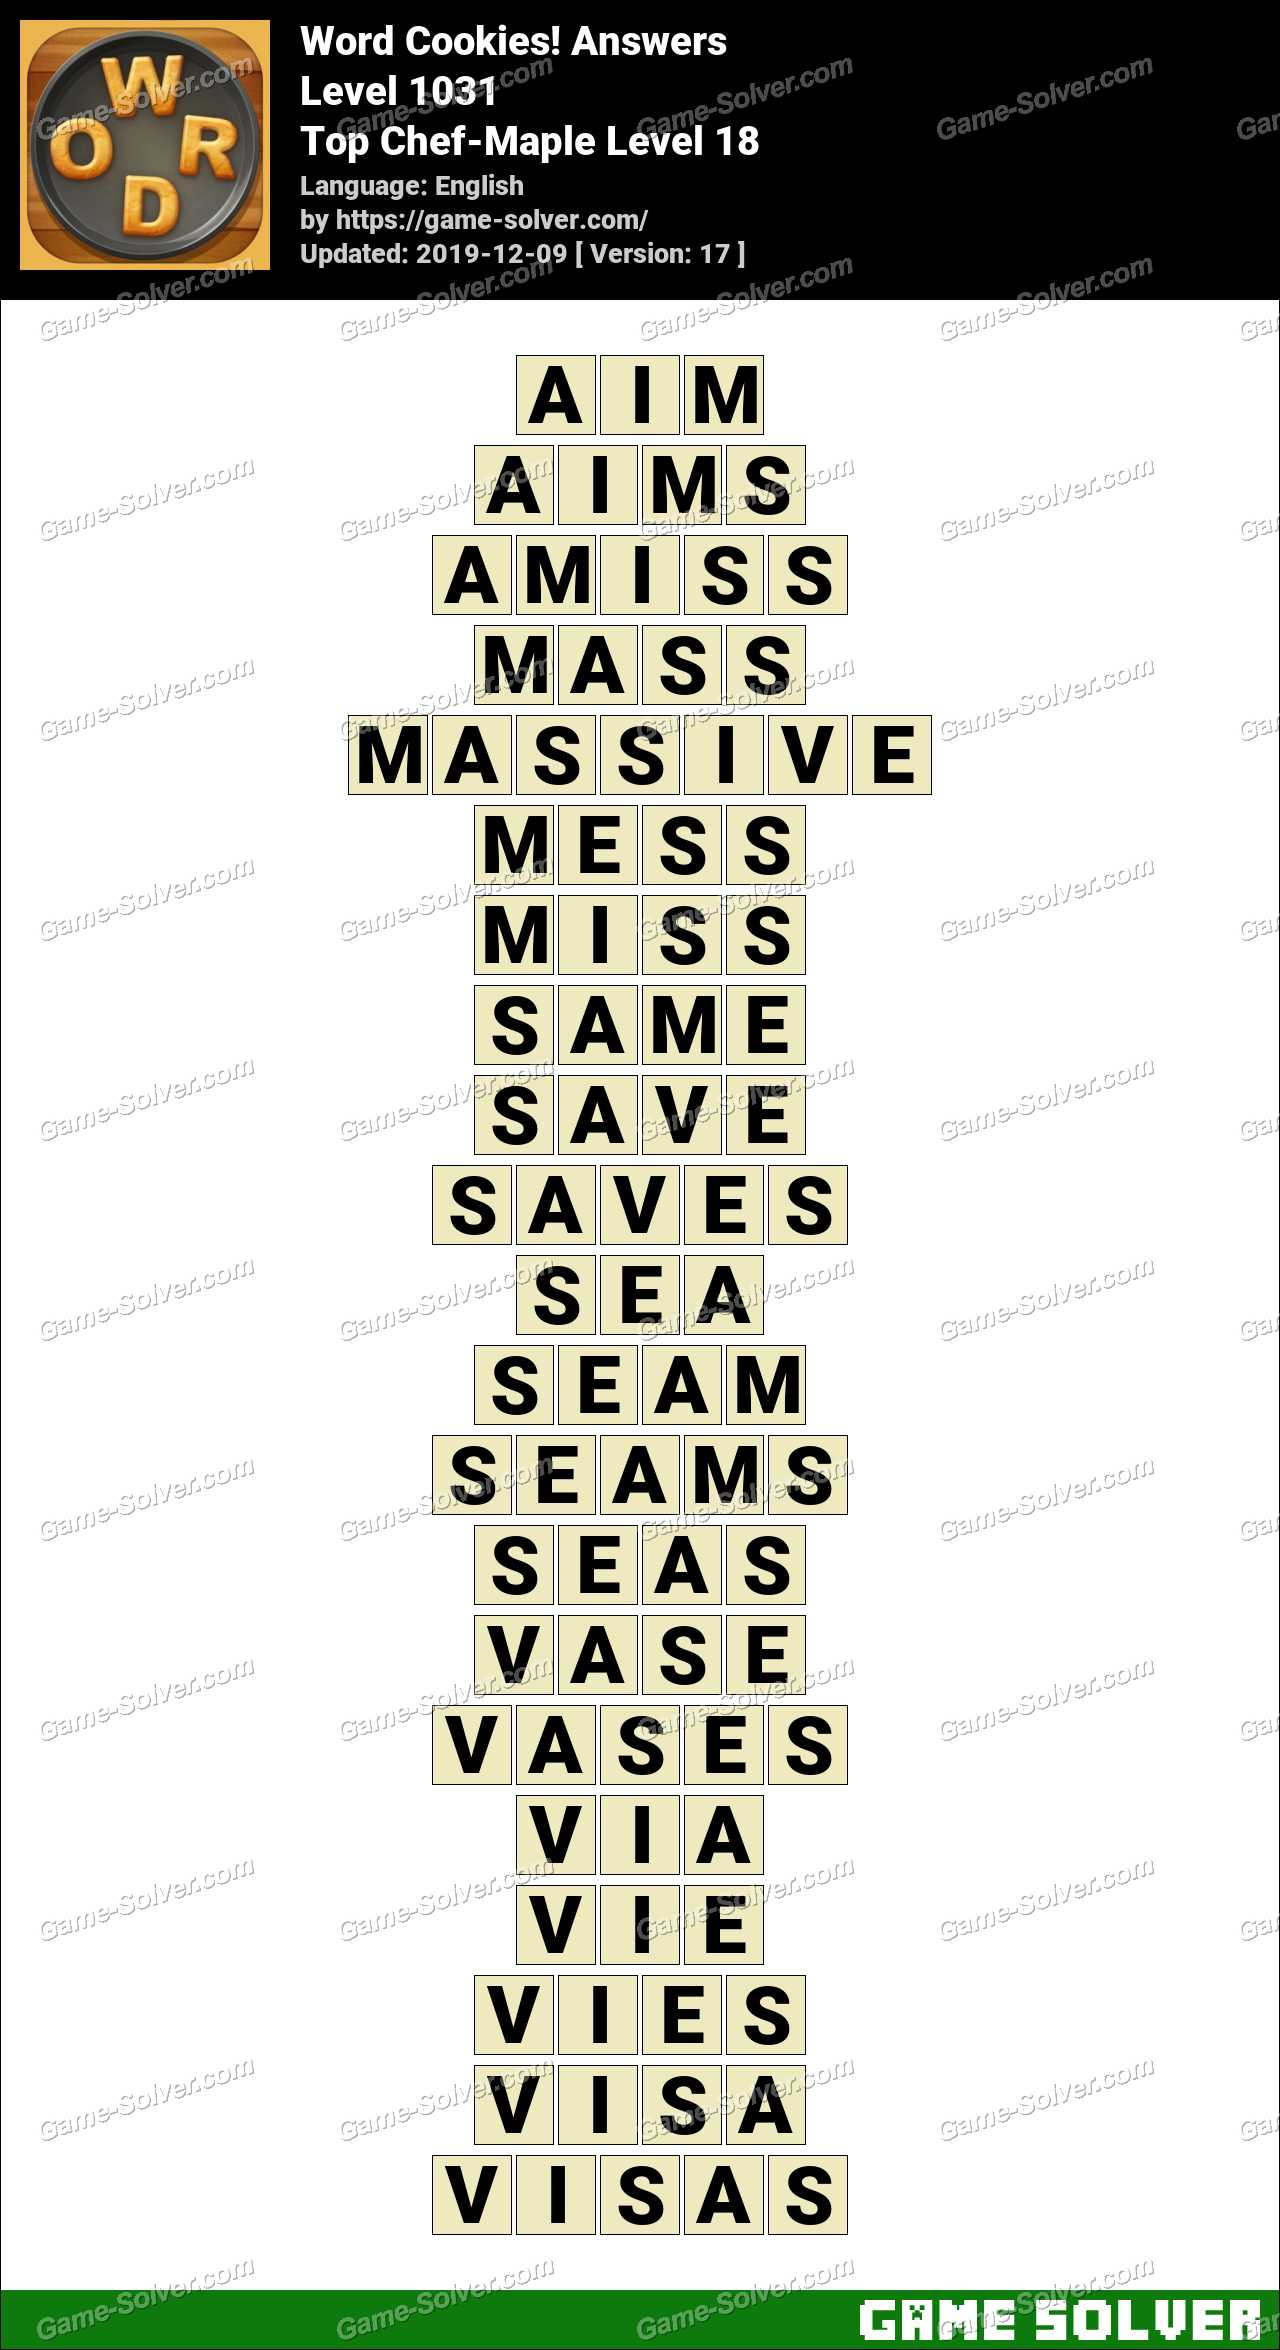 Word Cookies Top Chef-Maple Level 18 Answers